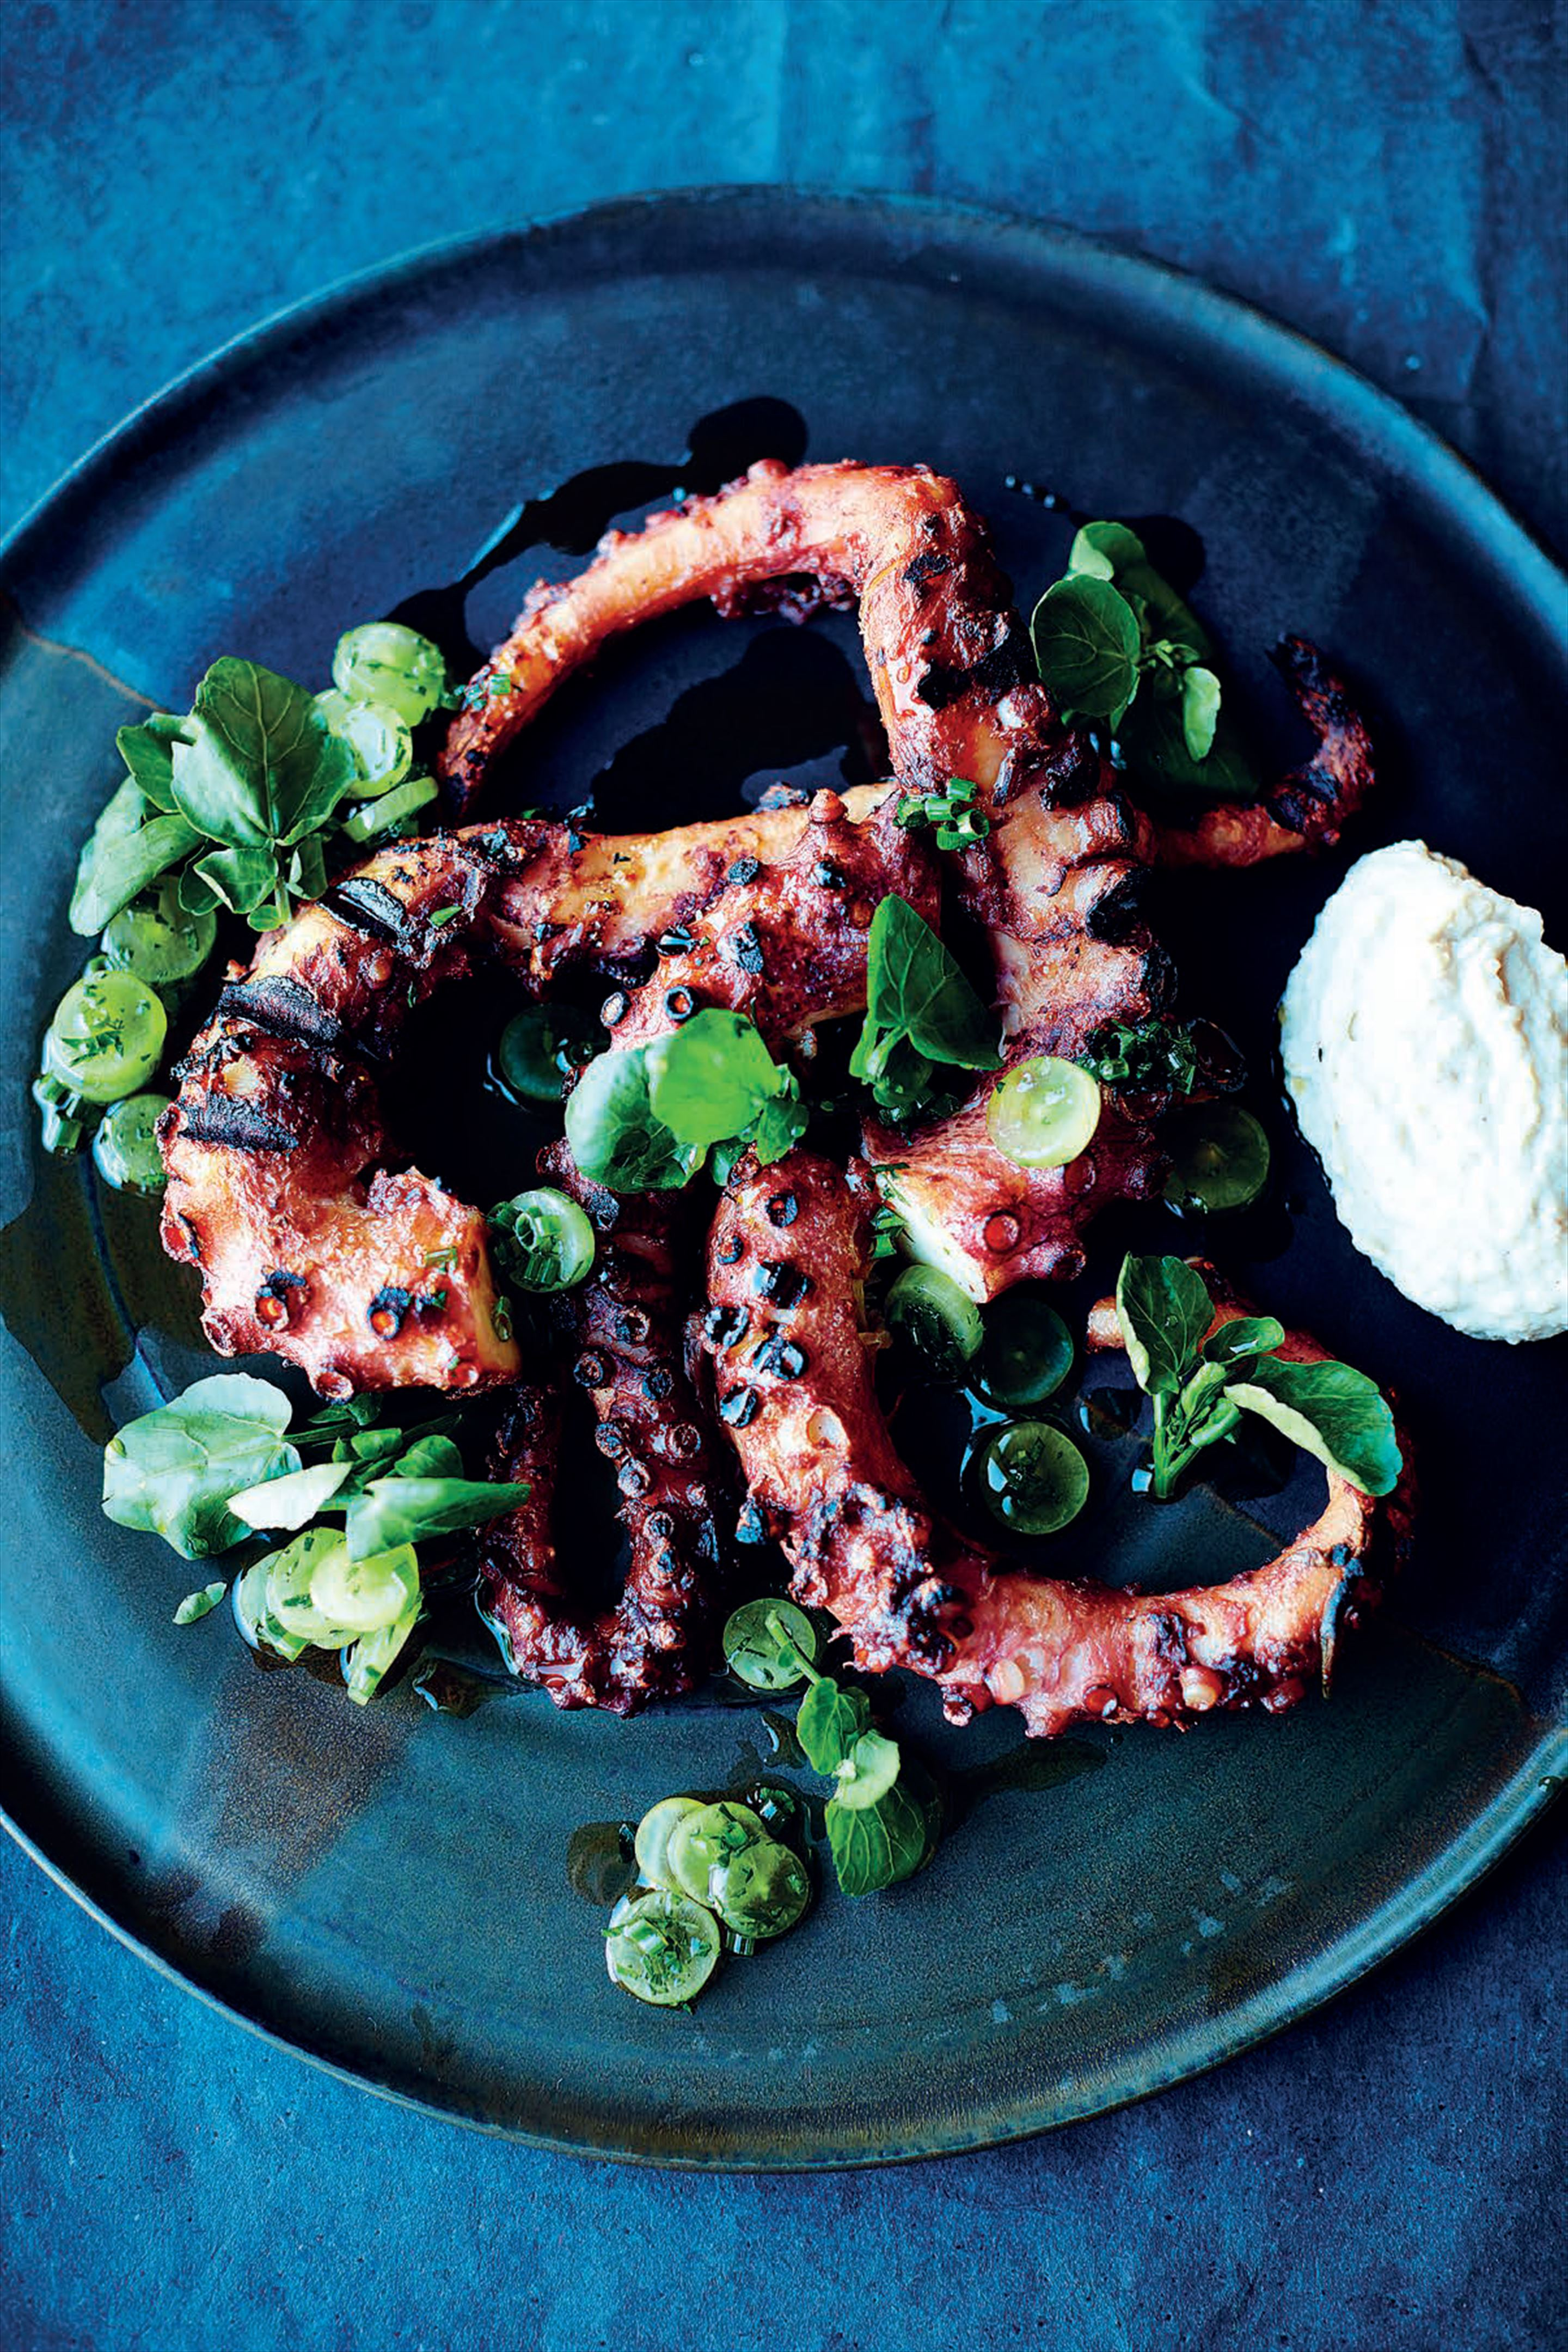 Seared octopus, almond and sherry vinegar bread sauce